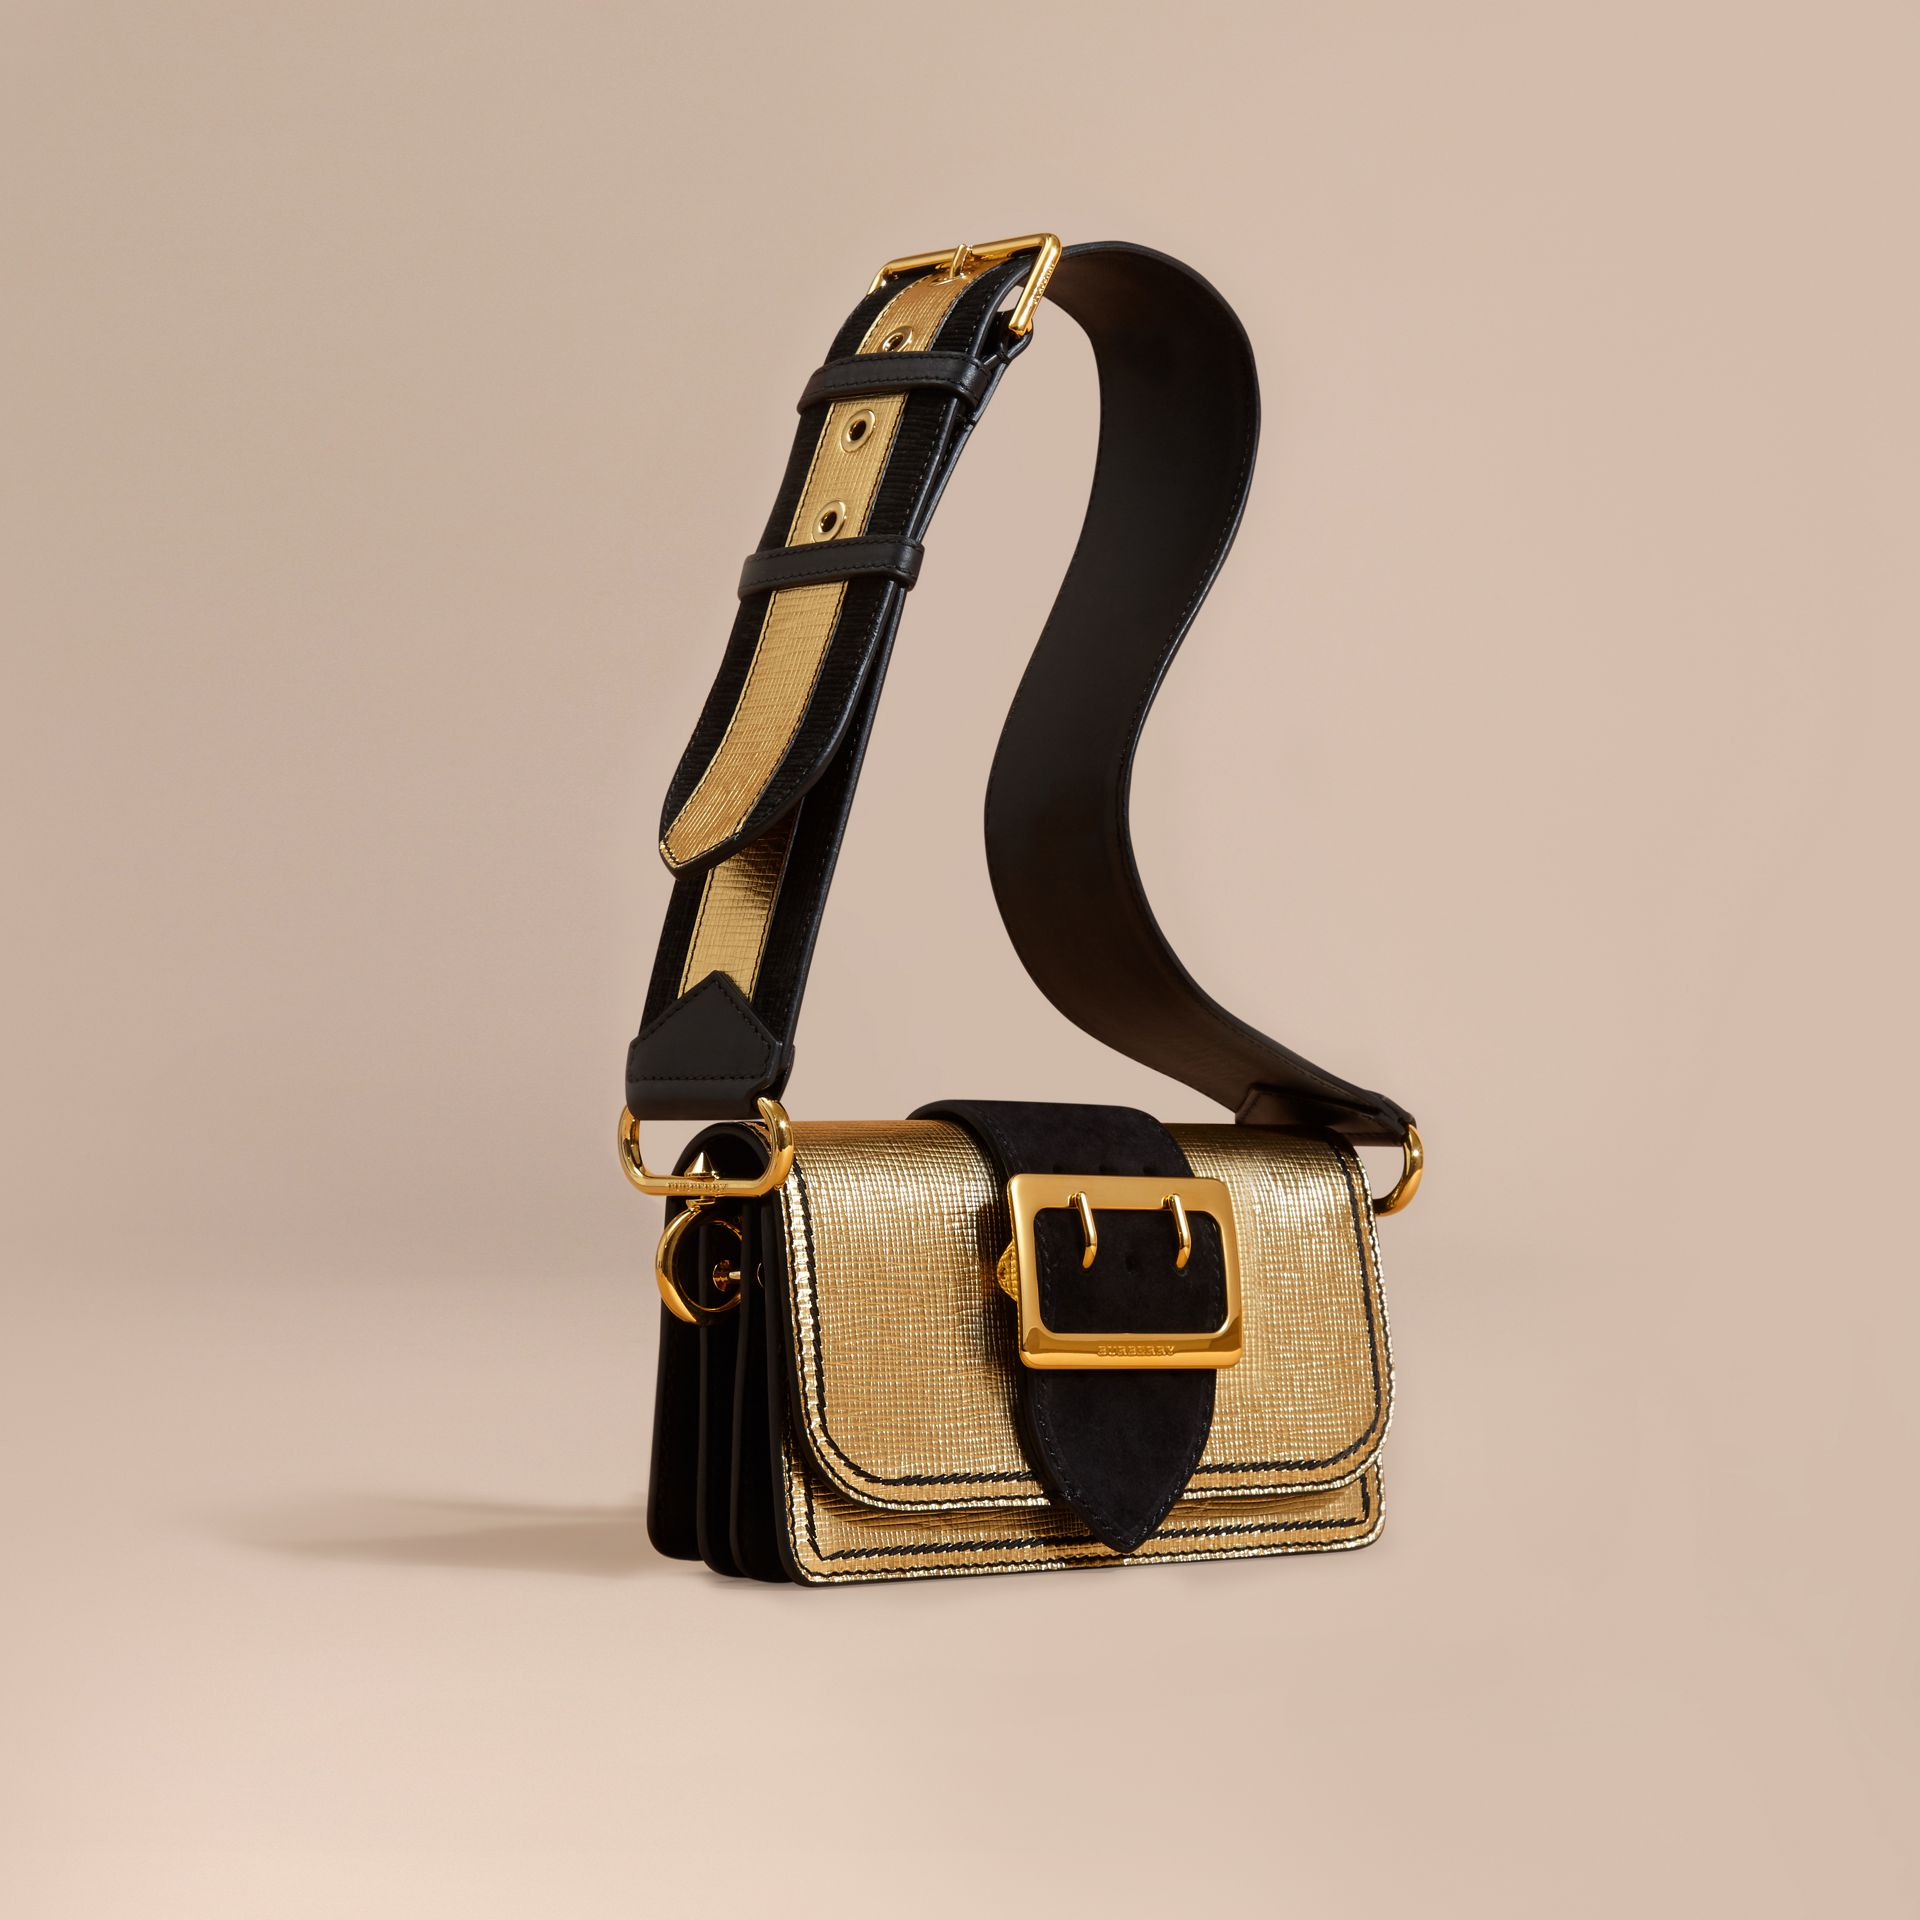 Gold/black The Small Buckle Bag in Metallic Leather and Suede - gallery image 1